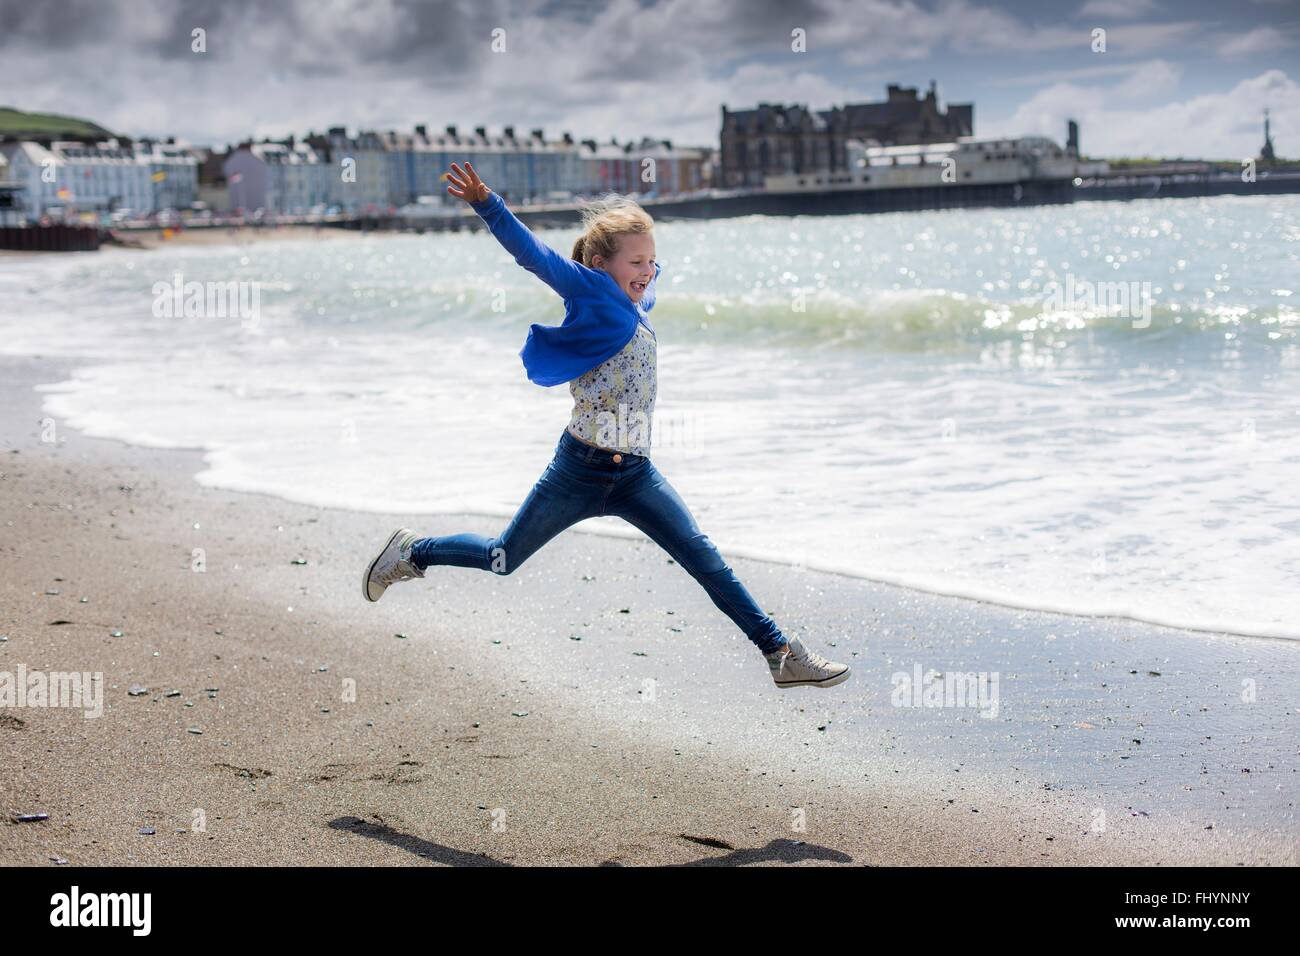 MODEL RELEASED. Girl leaping on the beach. - Stock Image